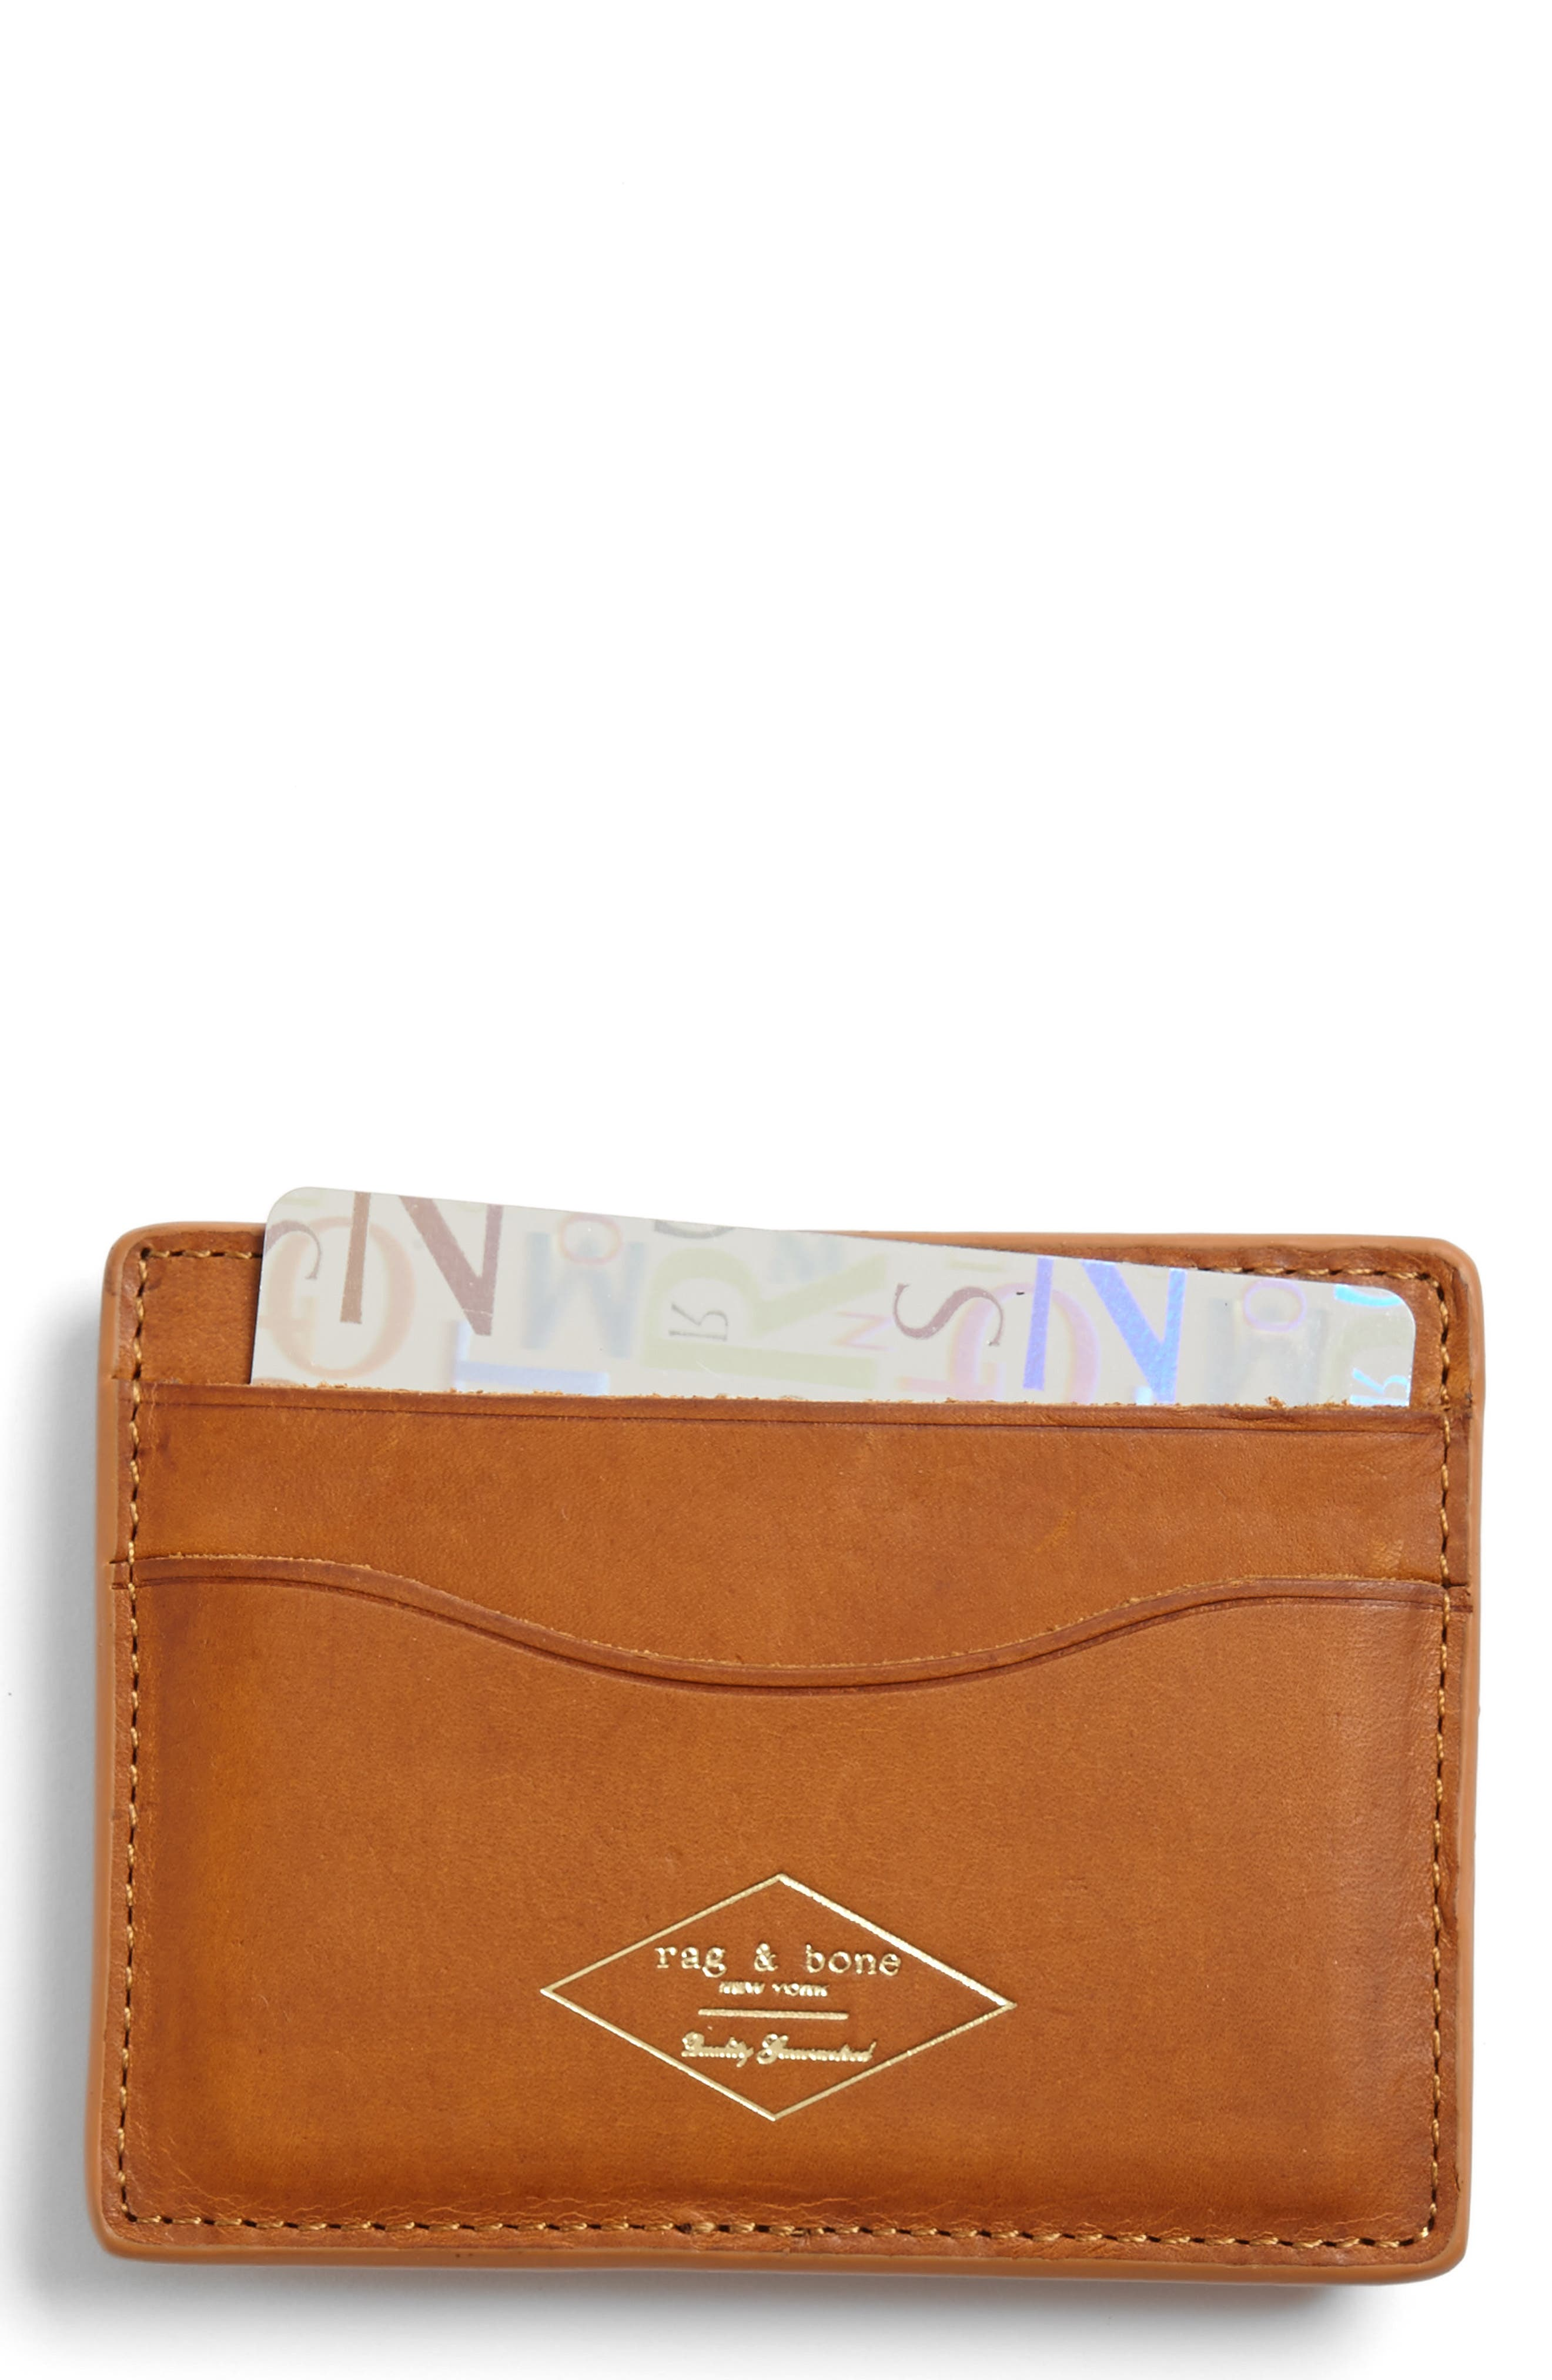 rag & bone Leather Card Case